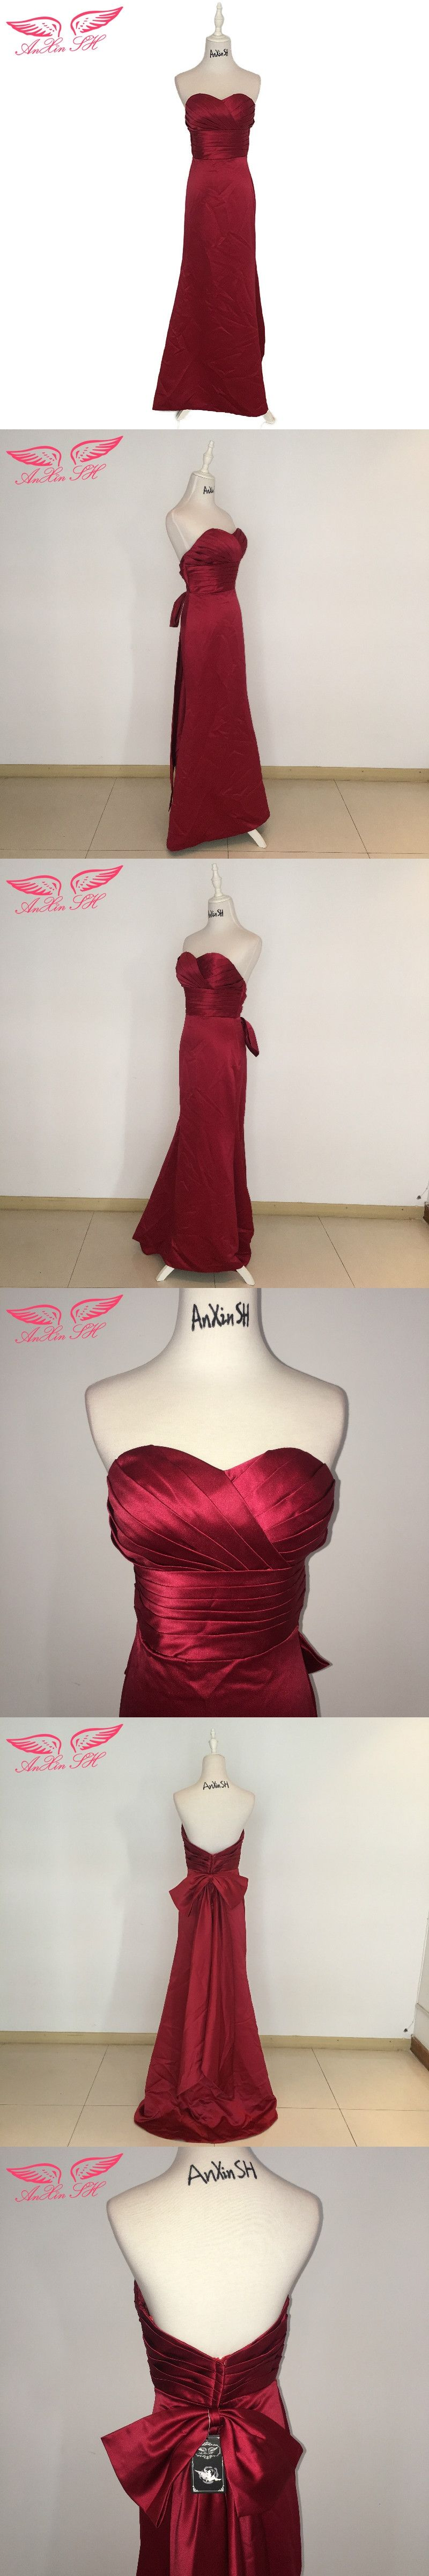 Anxin sh wine red princess bow evening dress satin vintage strapless